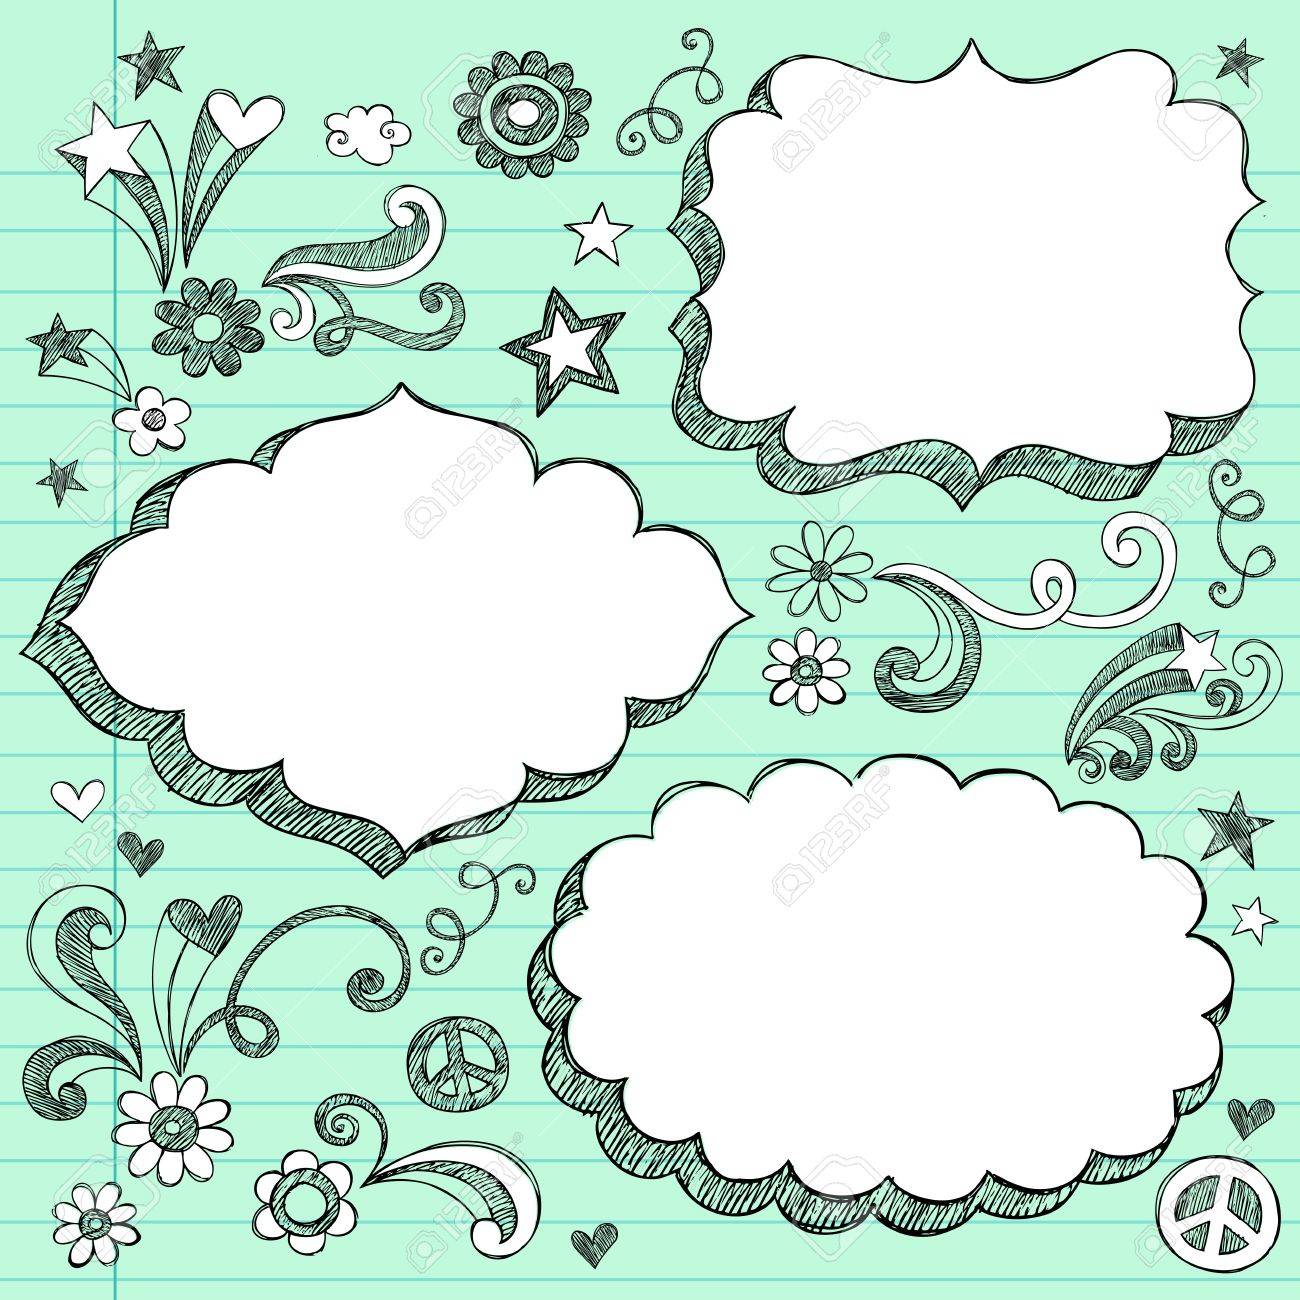 sketchy 3 d shaped ornate comic book style speech bubble frames